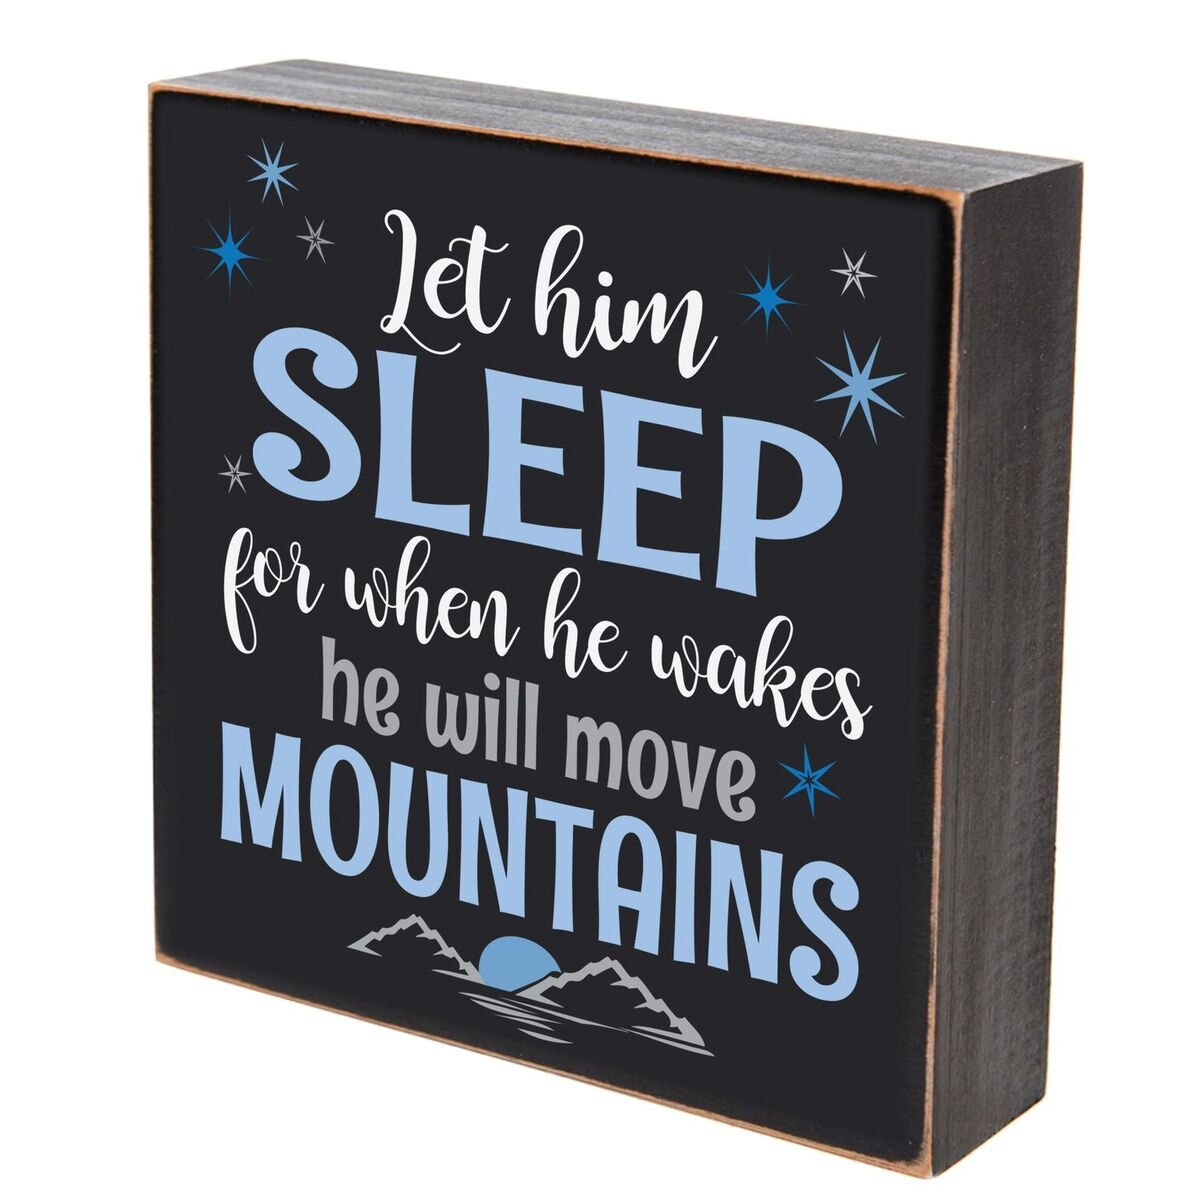 Let Him sleep for when he wakes he will move mountains box sign for the home Christian Gifts for boys Wall art decor print Decoration (Let Him Sleep)